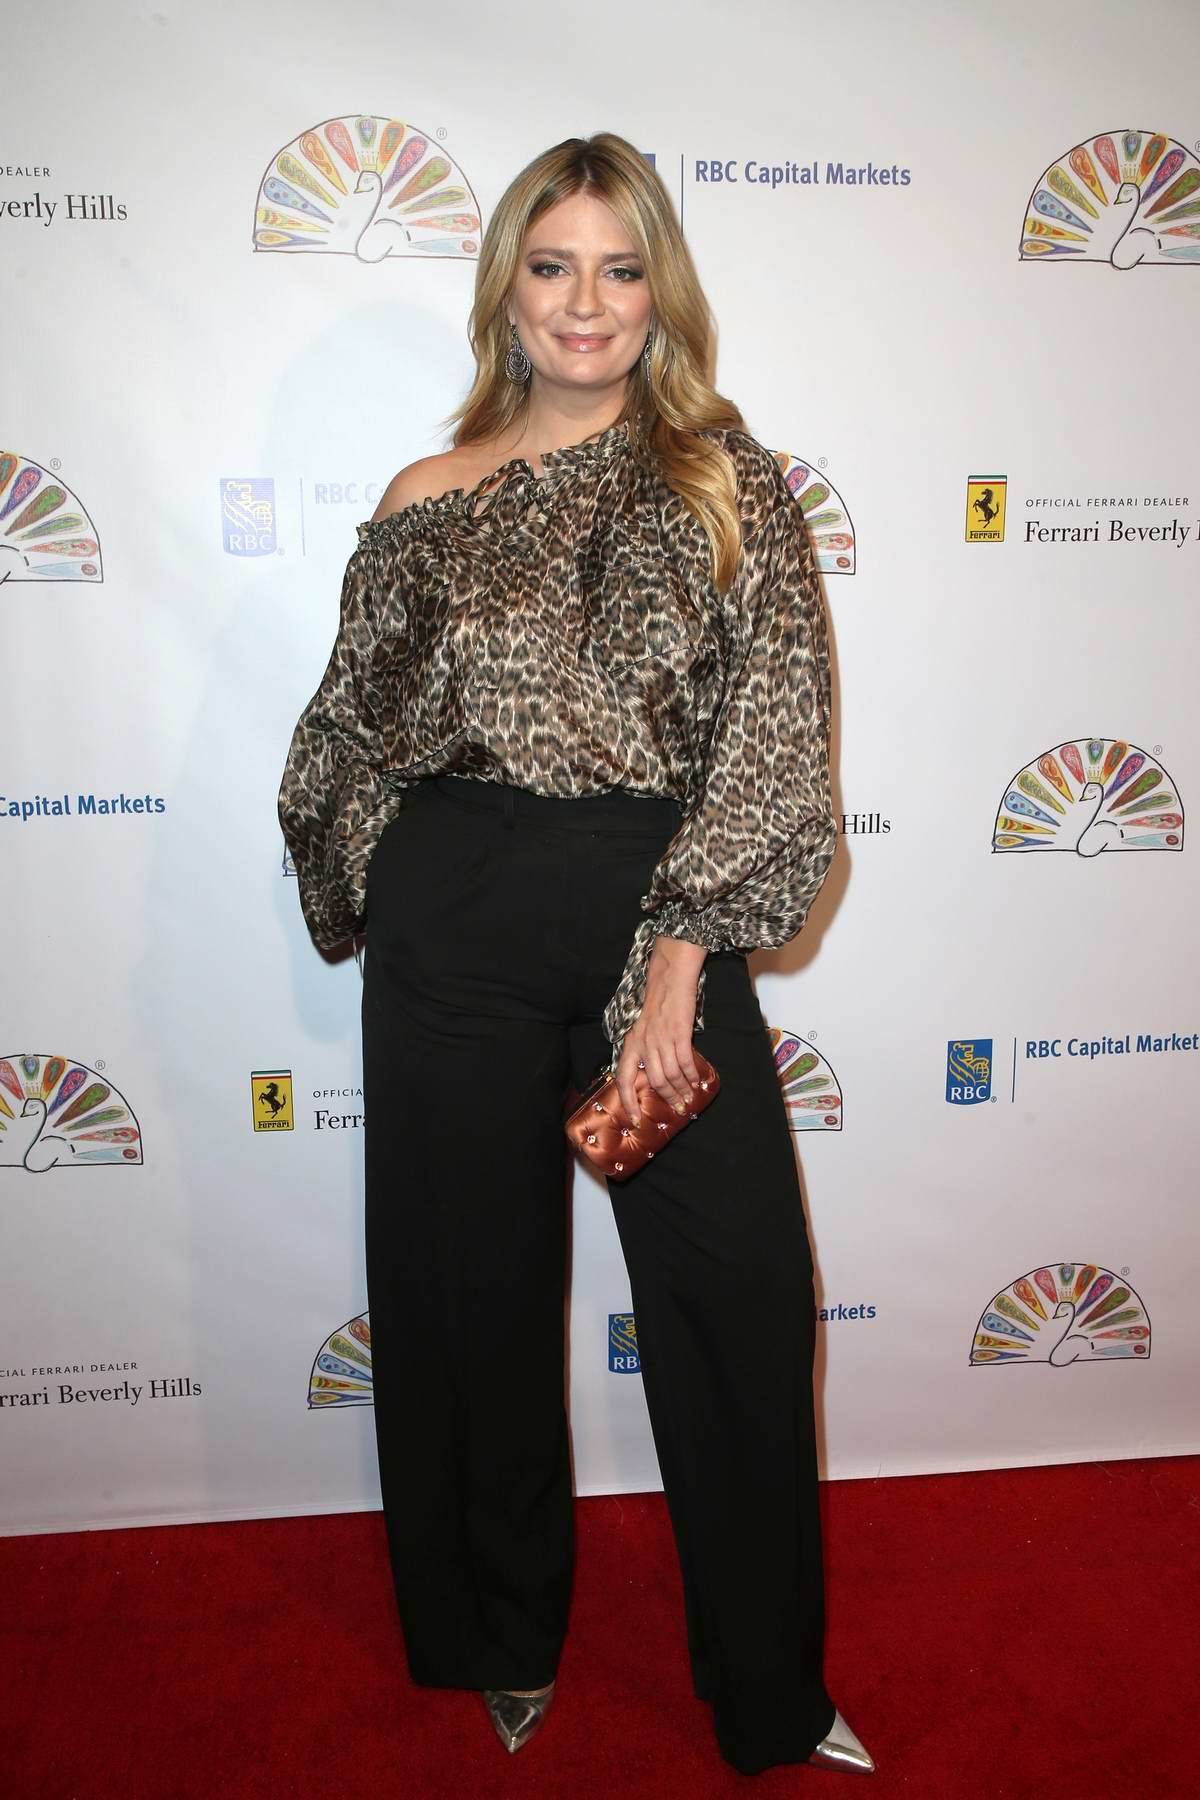 Mischa Barton attends the 2019 Flaunt It Awards at Beverly Wilshire Four Seasons Hotel in Beverly Hills, Los Angeles